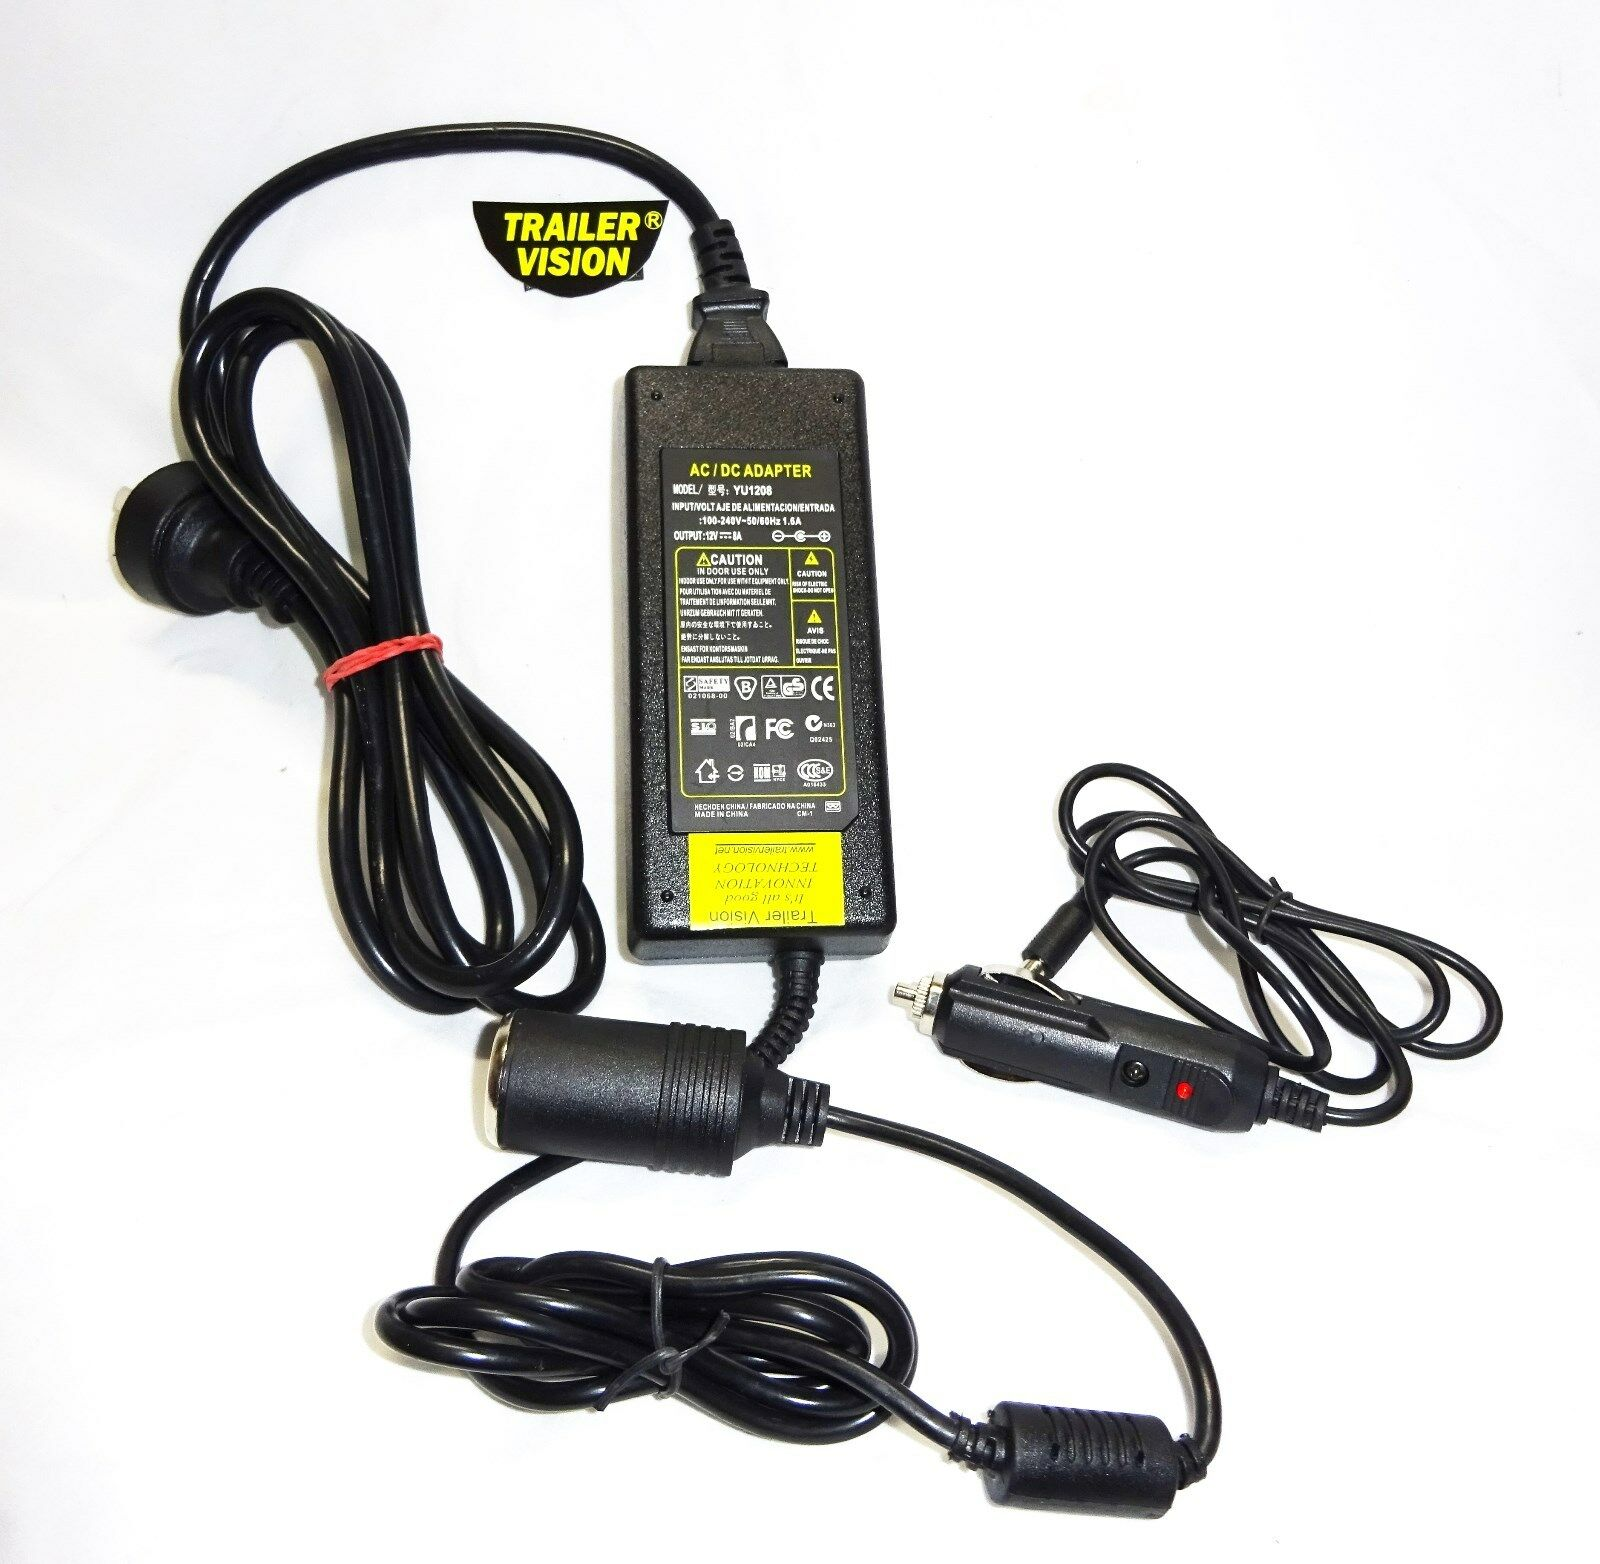 12 VOLT 8 AMP AC/DC REGULATED POWER SUPPLY CIG /ADAPTOR